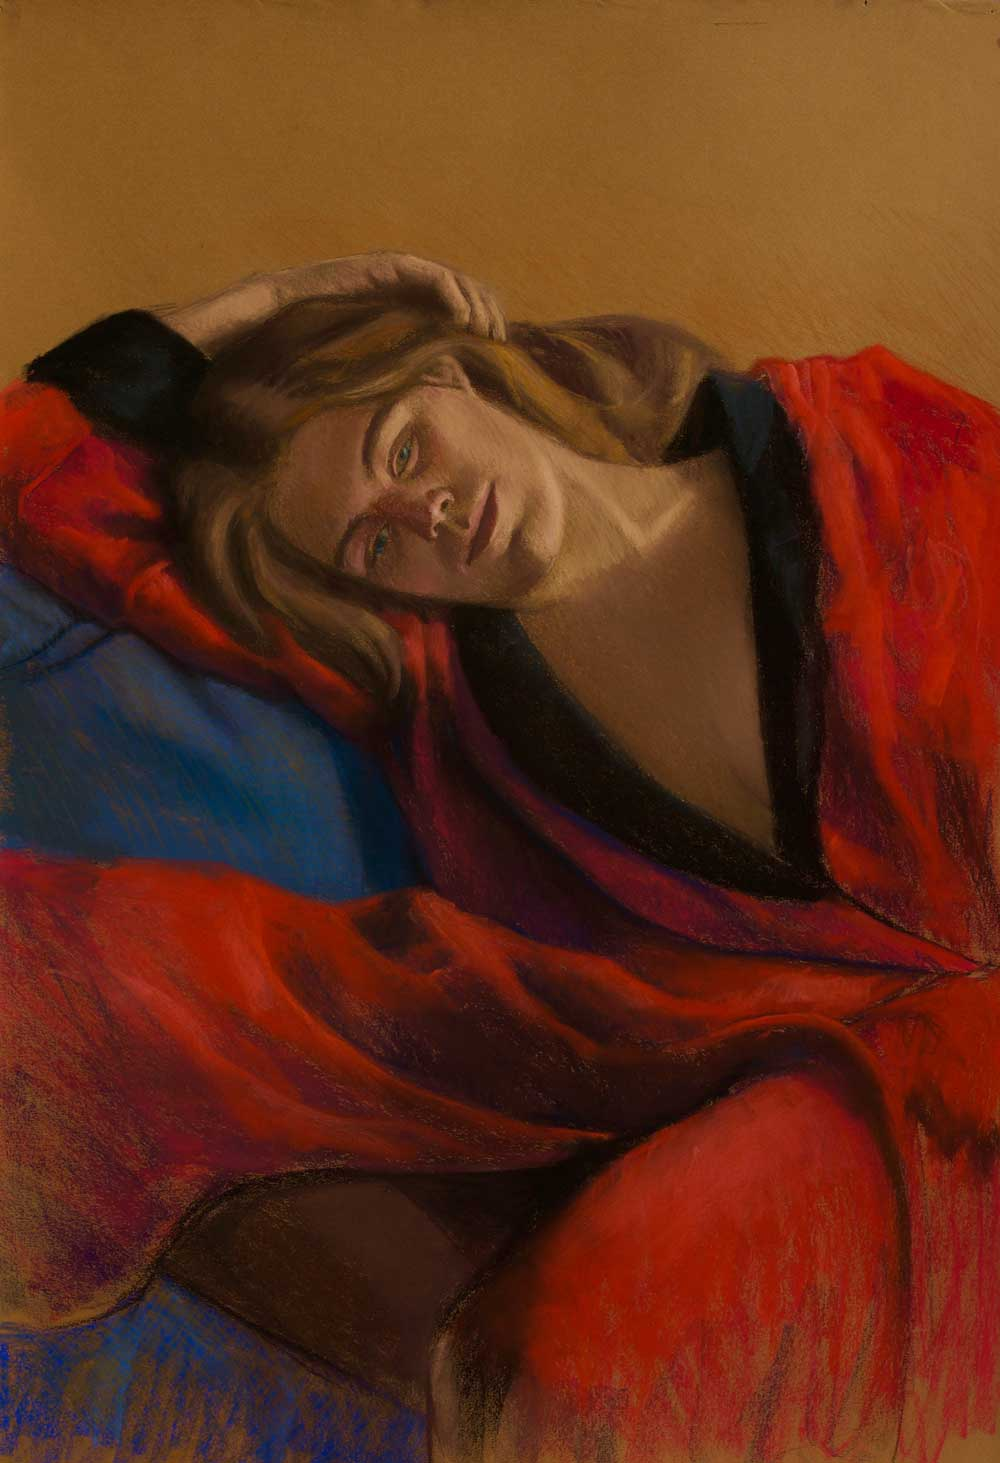 Red Robe 22x30, pastel by Promessi